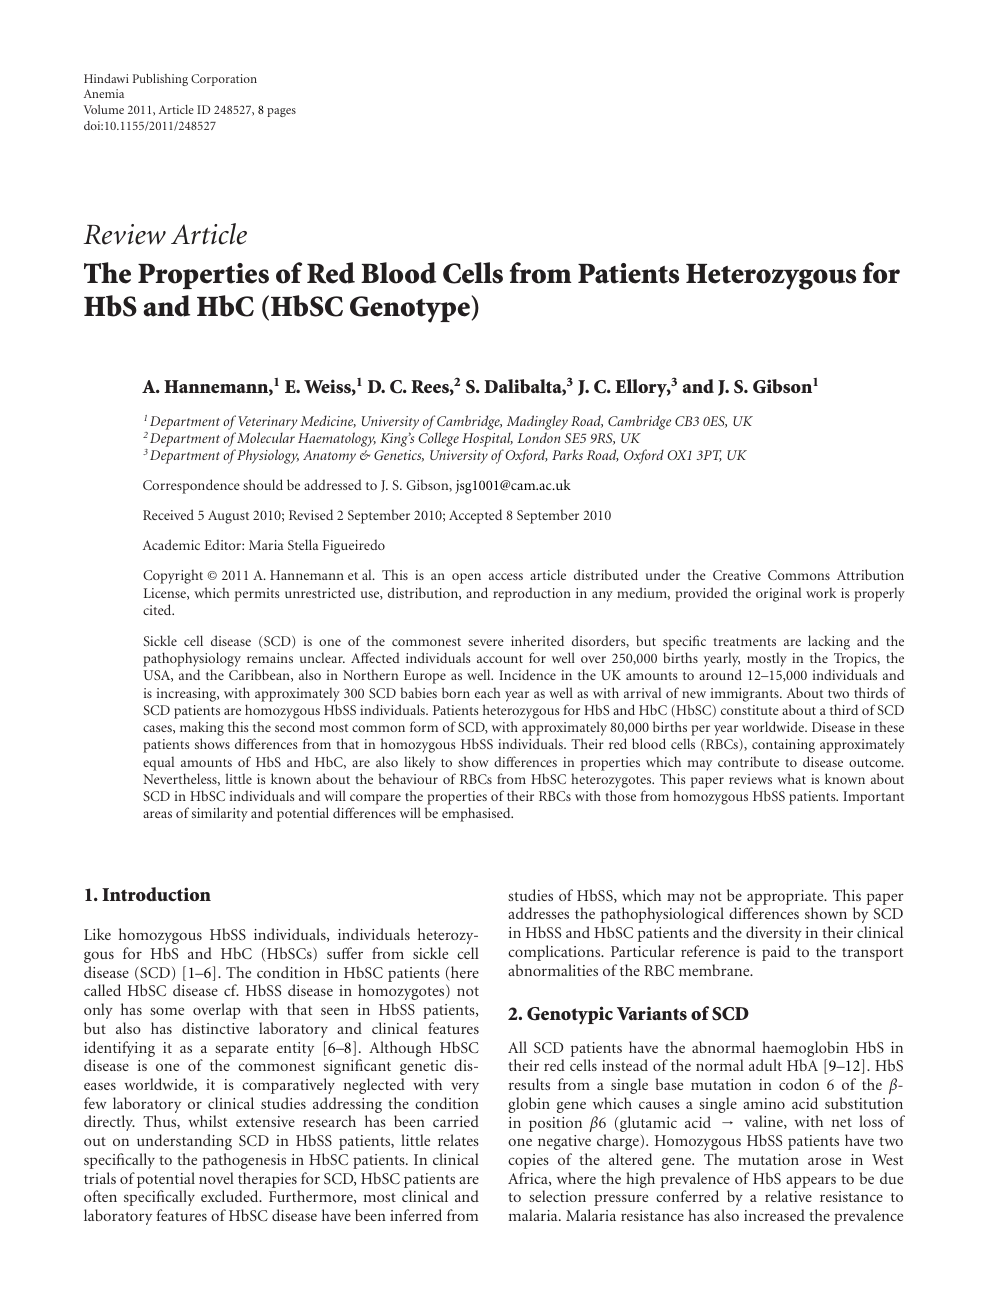 The Properties of Red Blood Cells from Patients Heterozygous for HbS